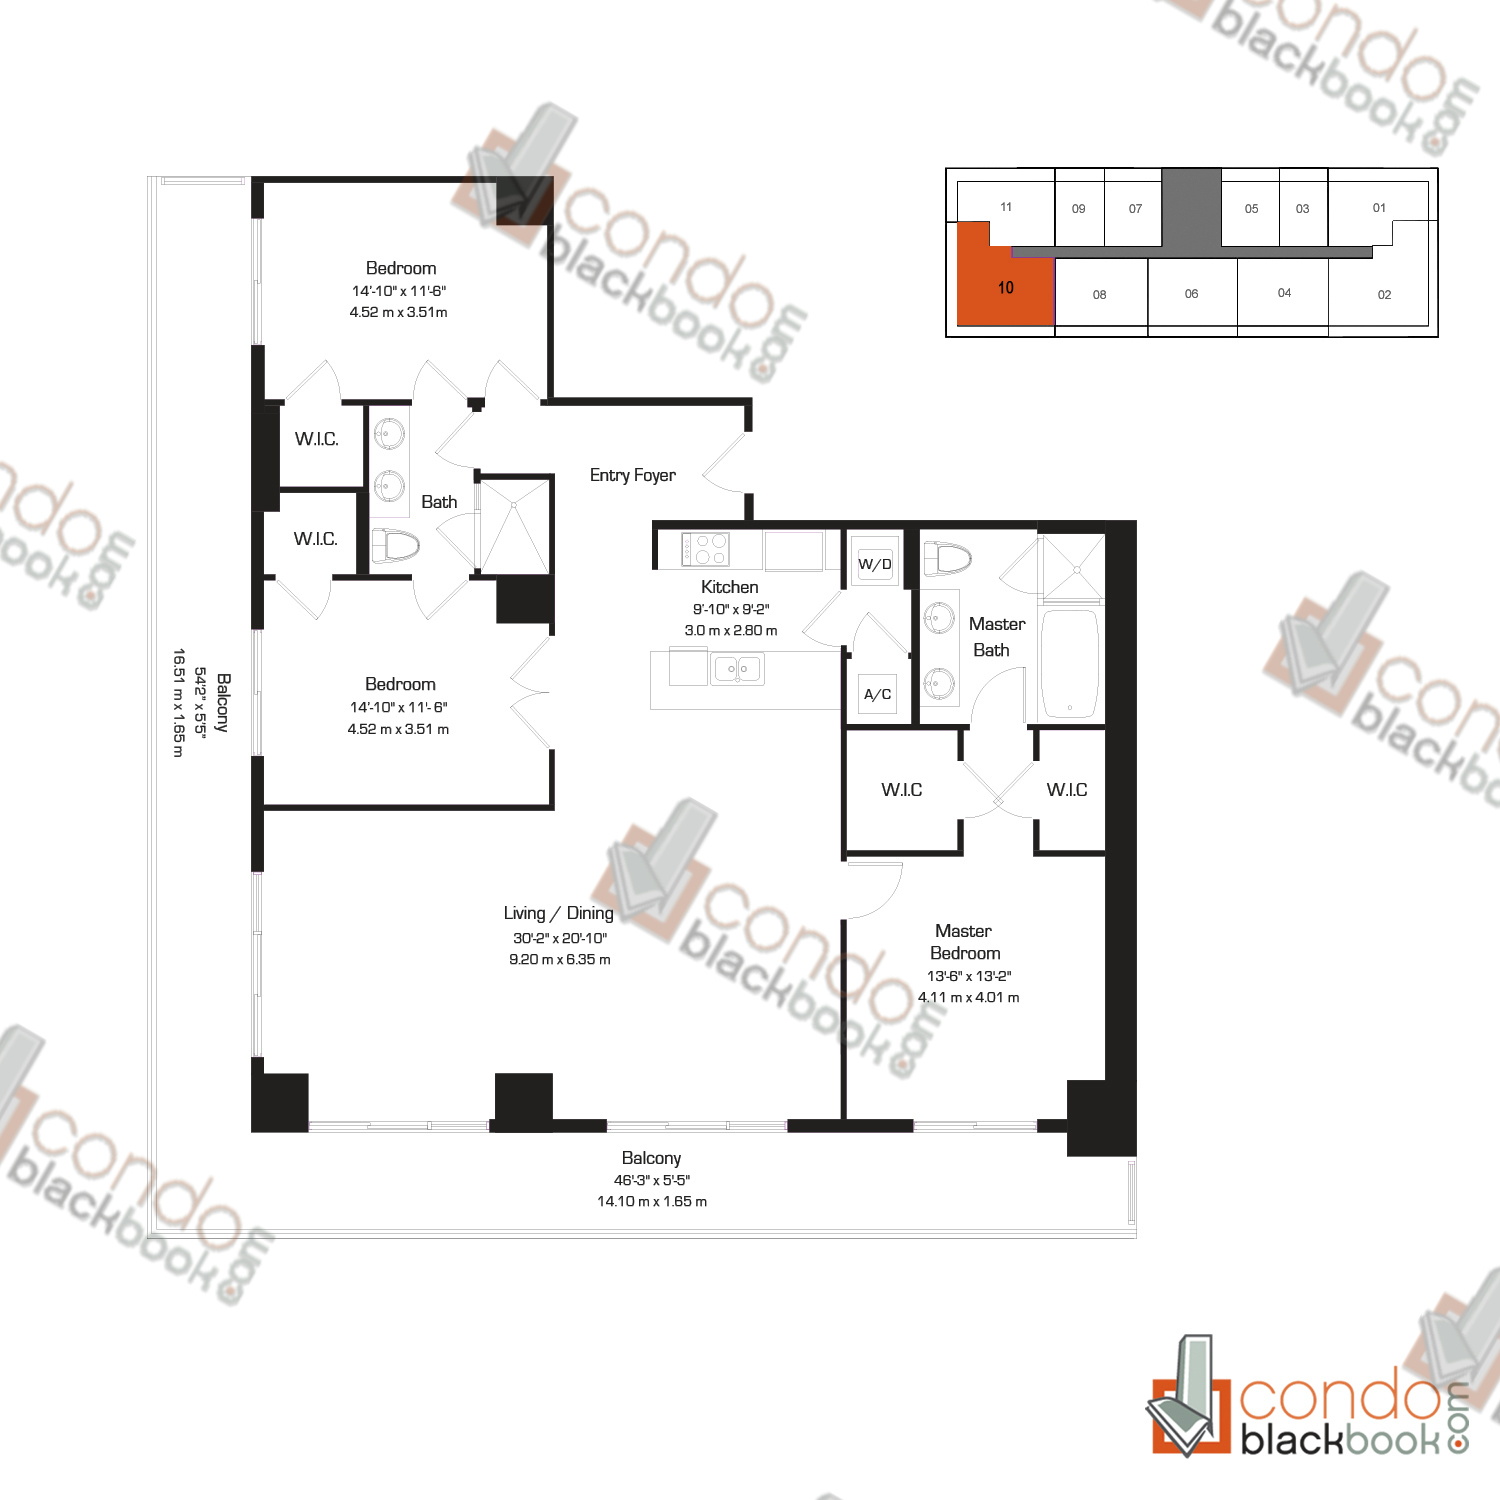 50 biscayne floor plans meze blog for Floor plans 900 biscayne